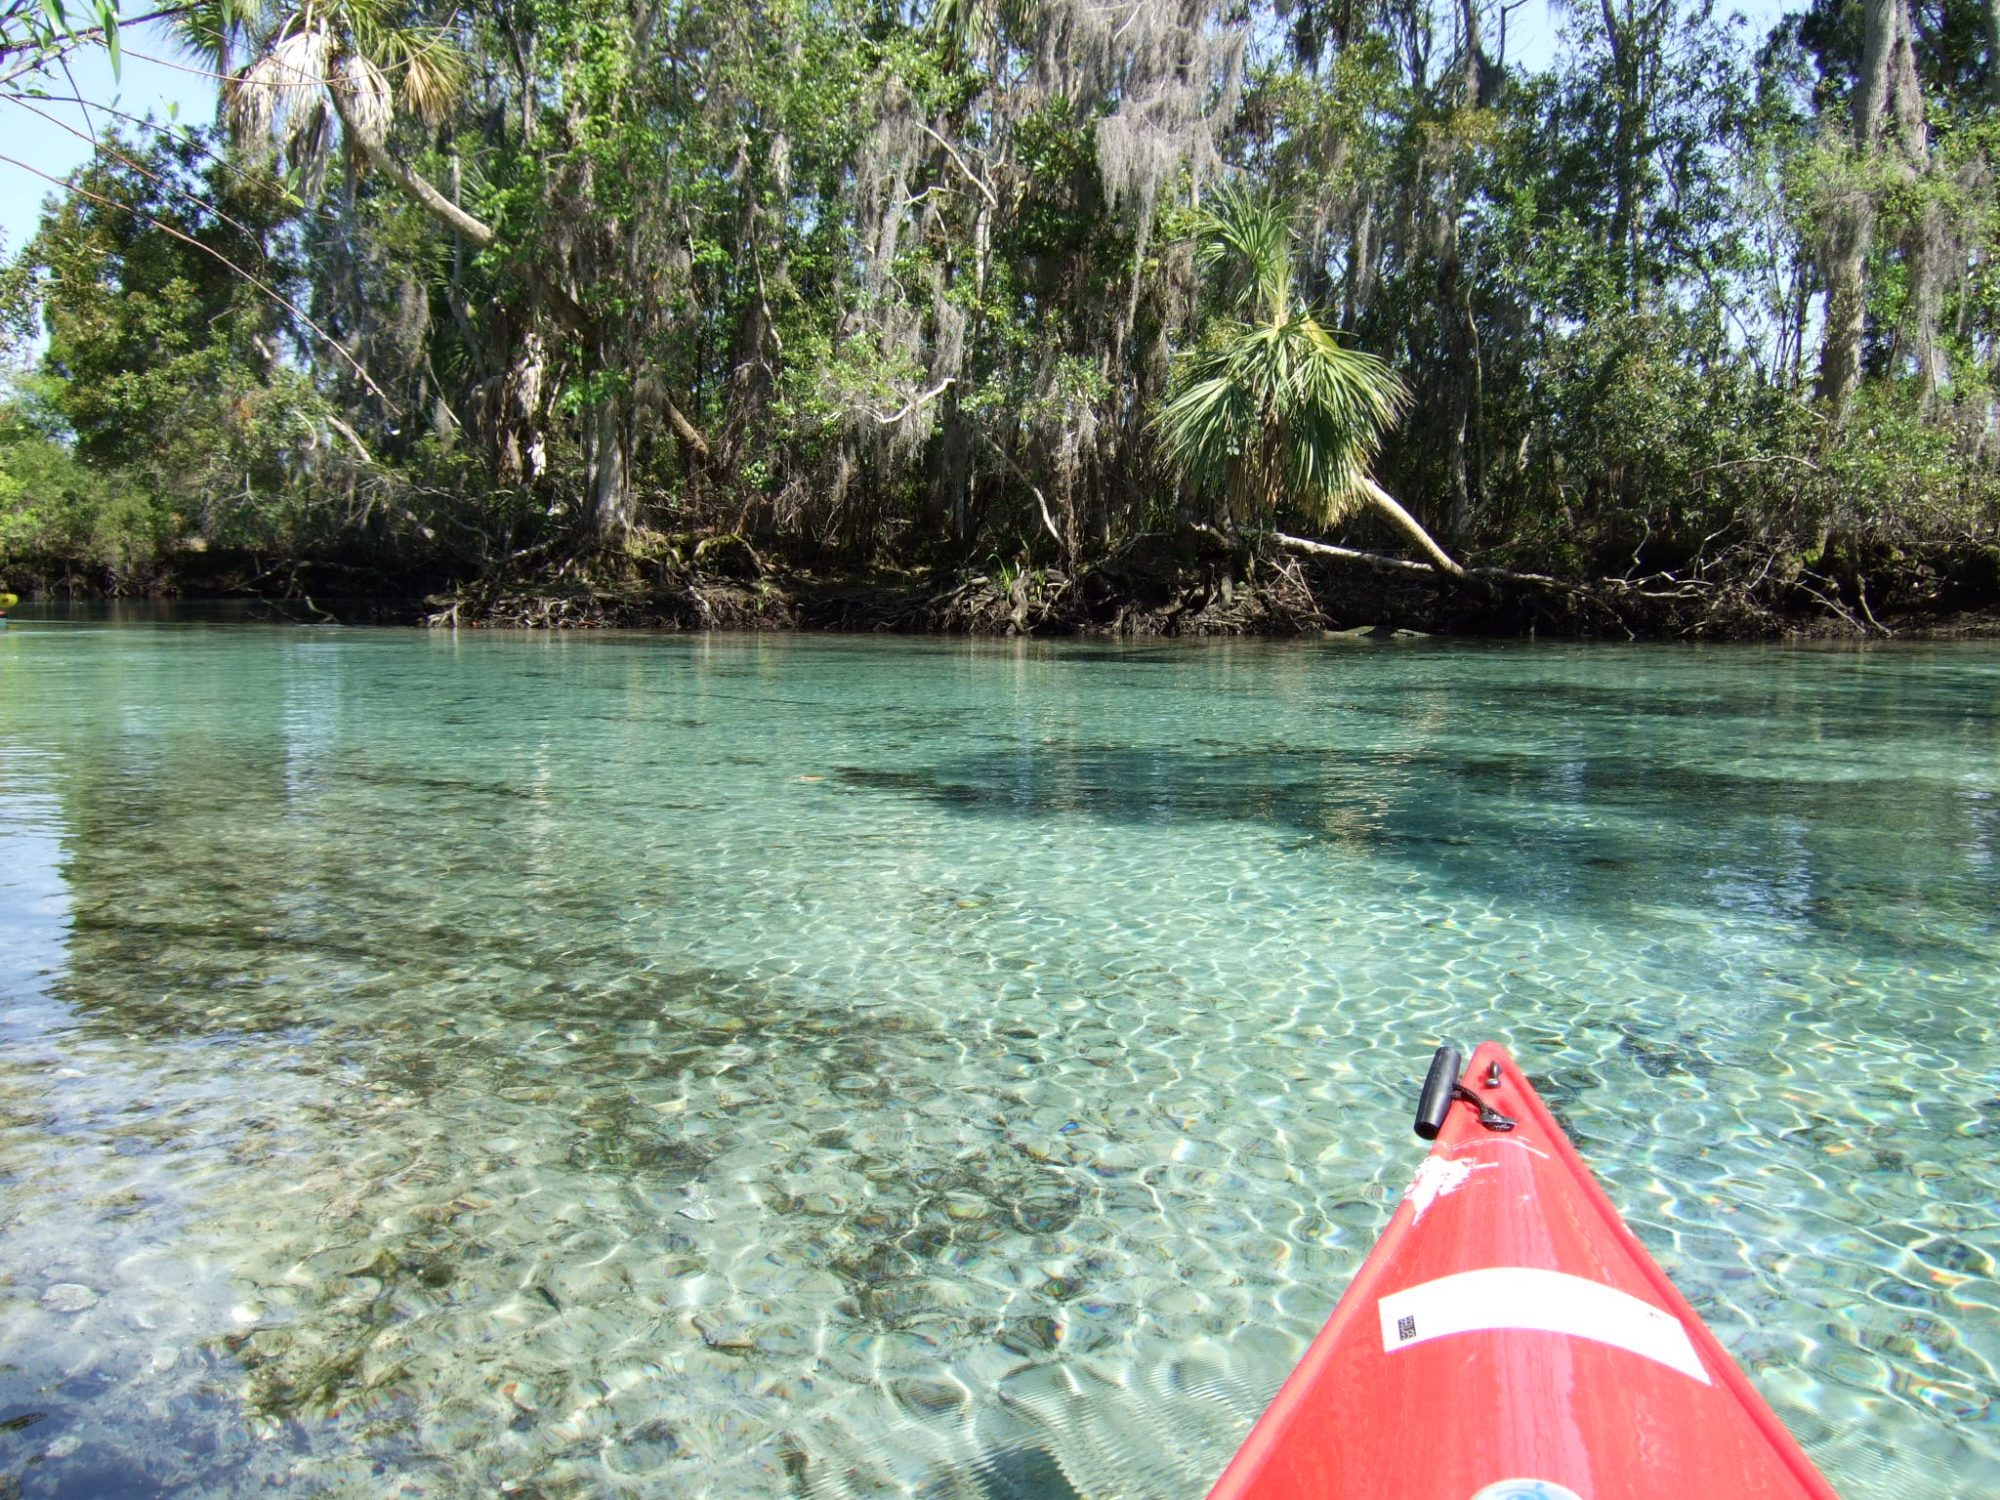 Kayaking in Florida